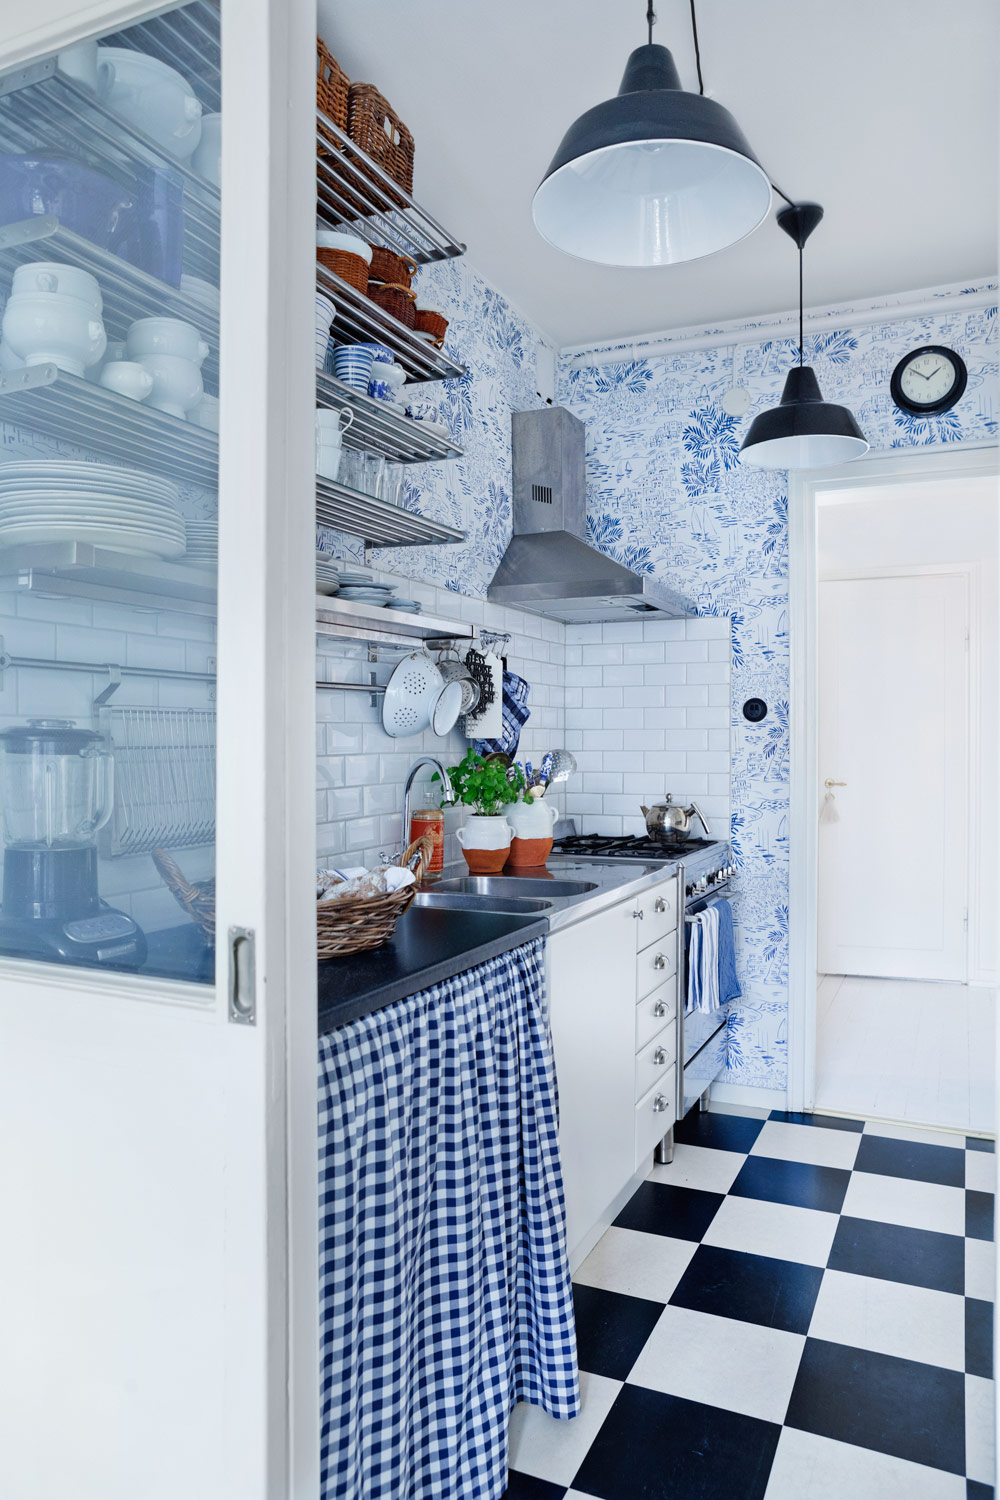 Blue And White Kitchen Wallpaper Gingham Skirt Open Shelving Subway